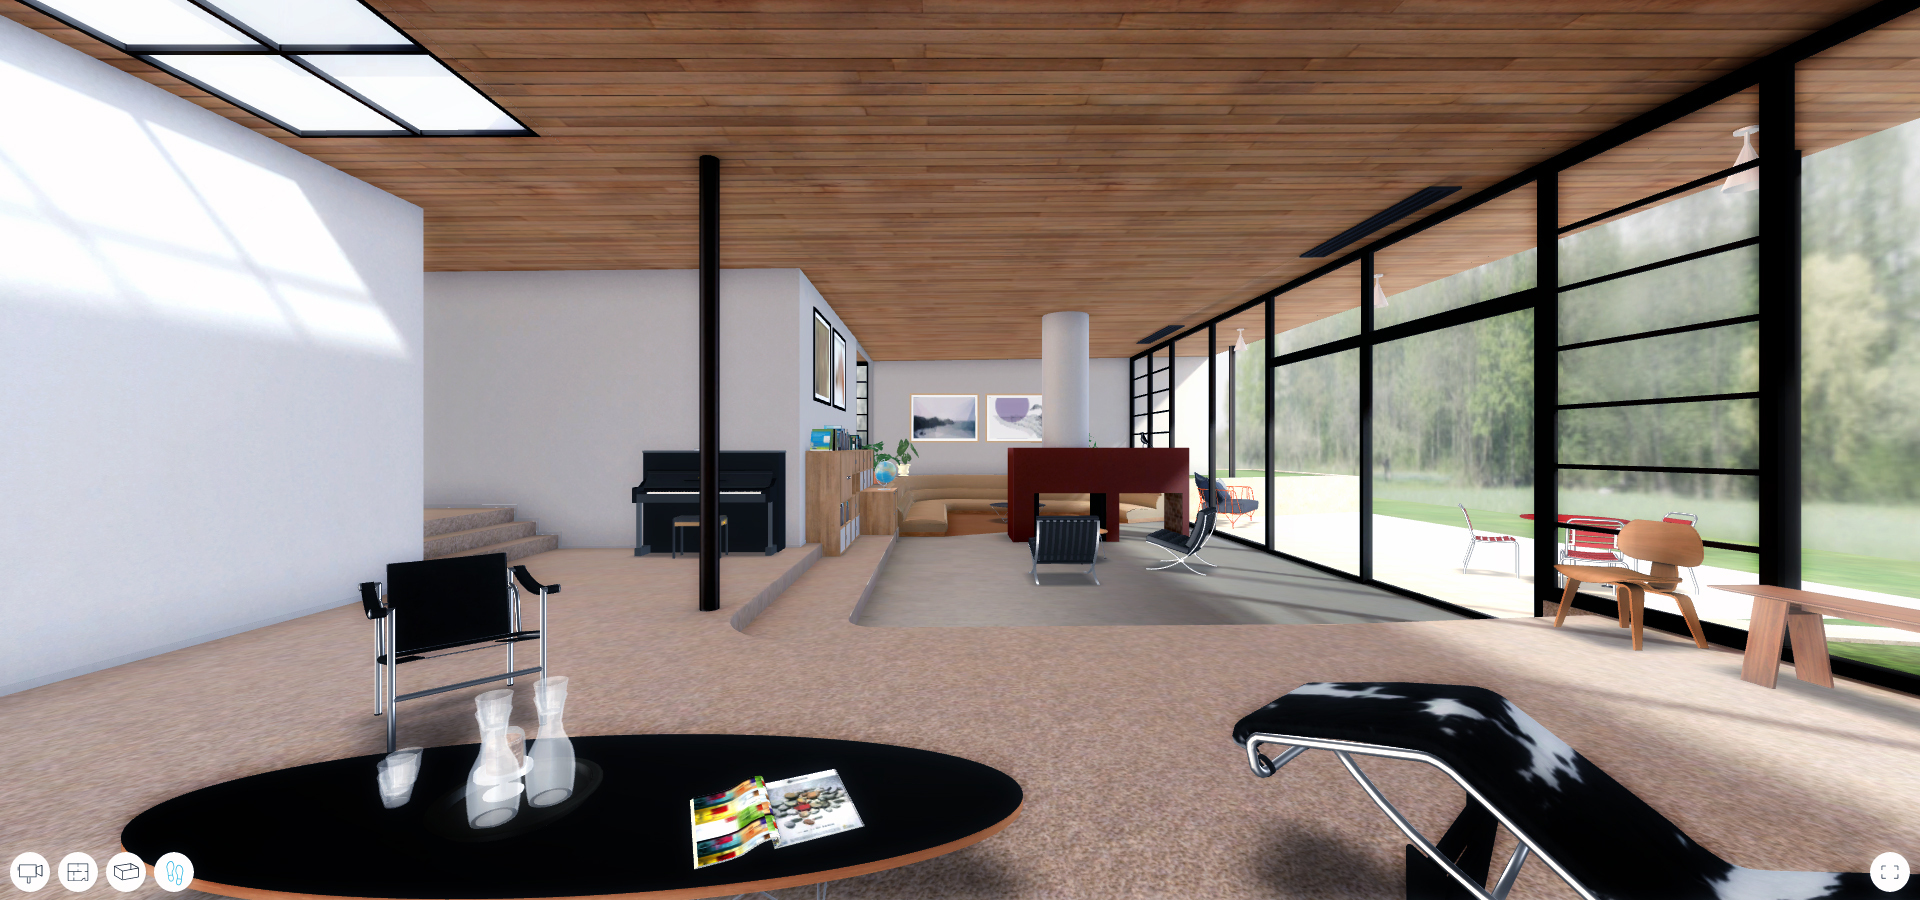 A Virtual Look Into Eames And Saarinen S Case Study House